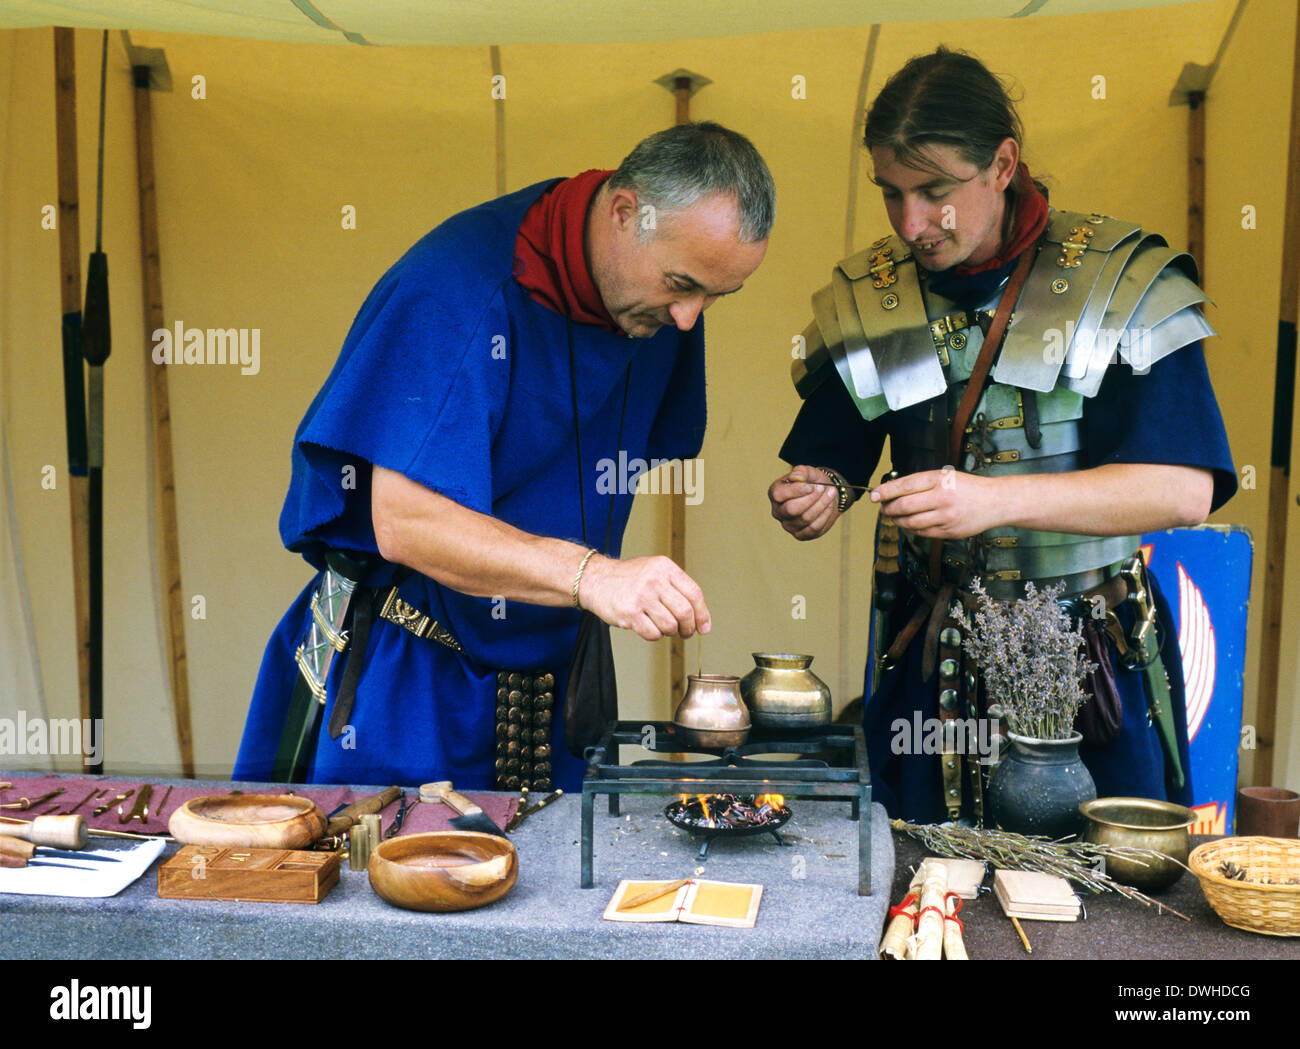 Roman Surgeon, 4. Jahrhundert, Reenactment Soldat Soldaten England UK Stockbild